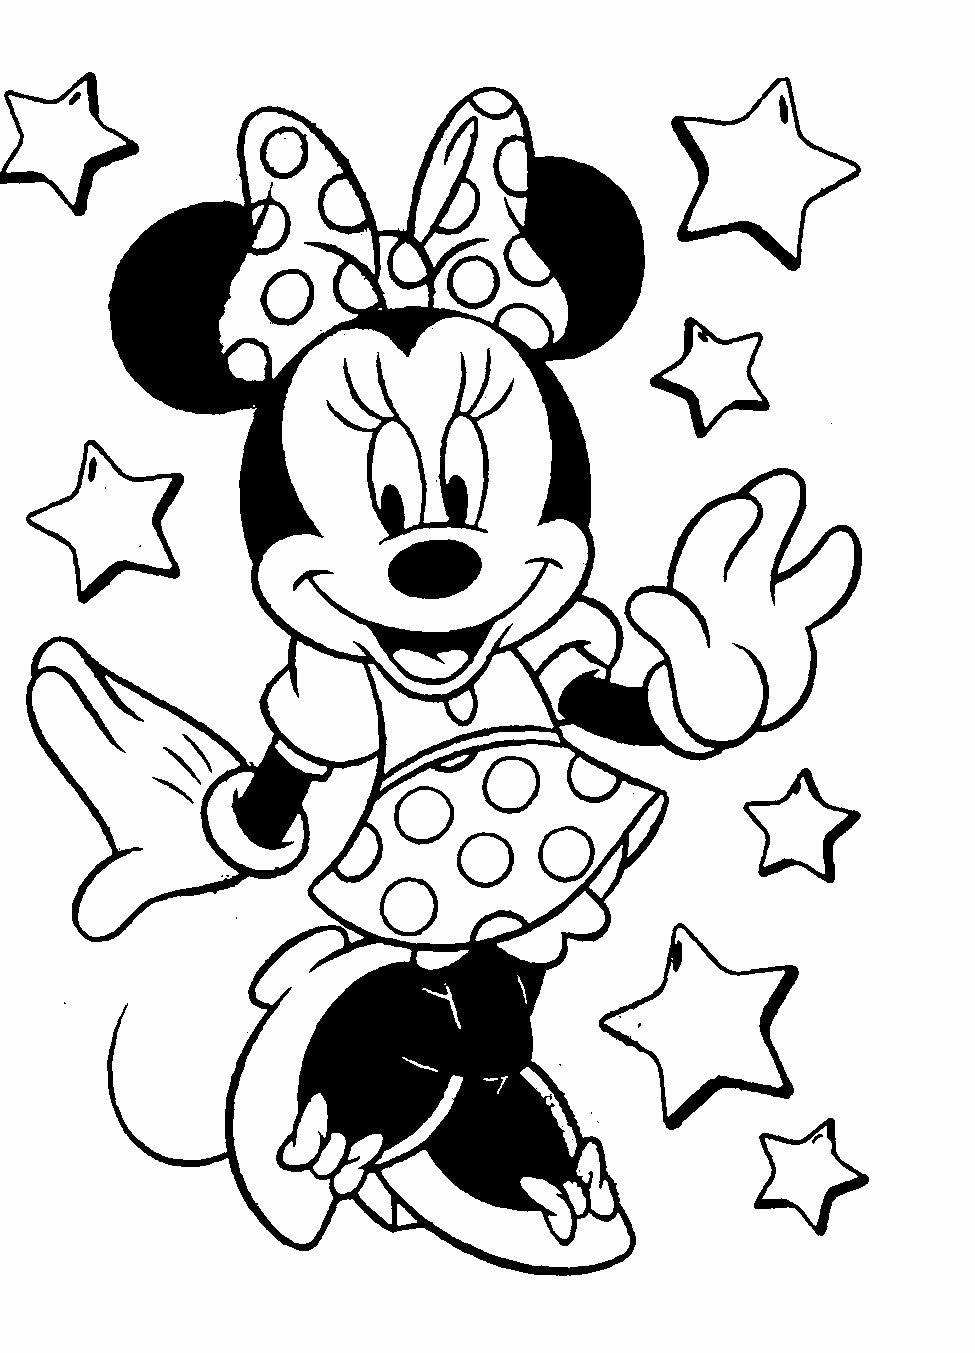 Valentine Coloring Pages Disney New Coloring Sheets Disney Valentine Colorng Mickey Mouse Coloring Pages Free Disney Coloring Pages Minnie Mouse Coloring Pages